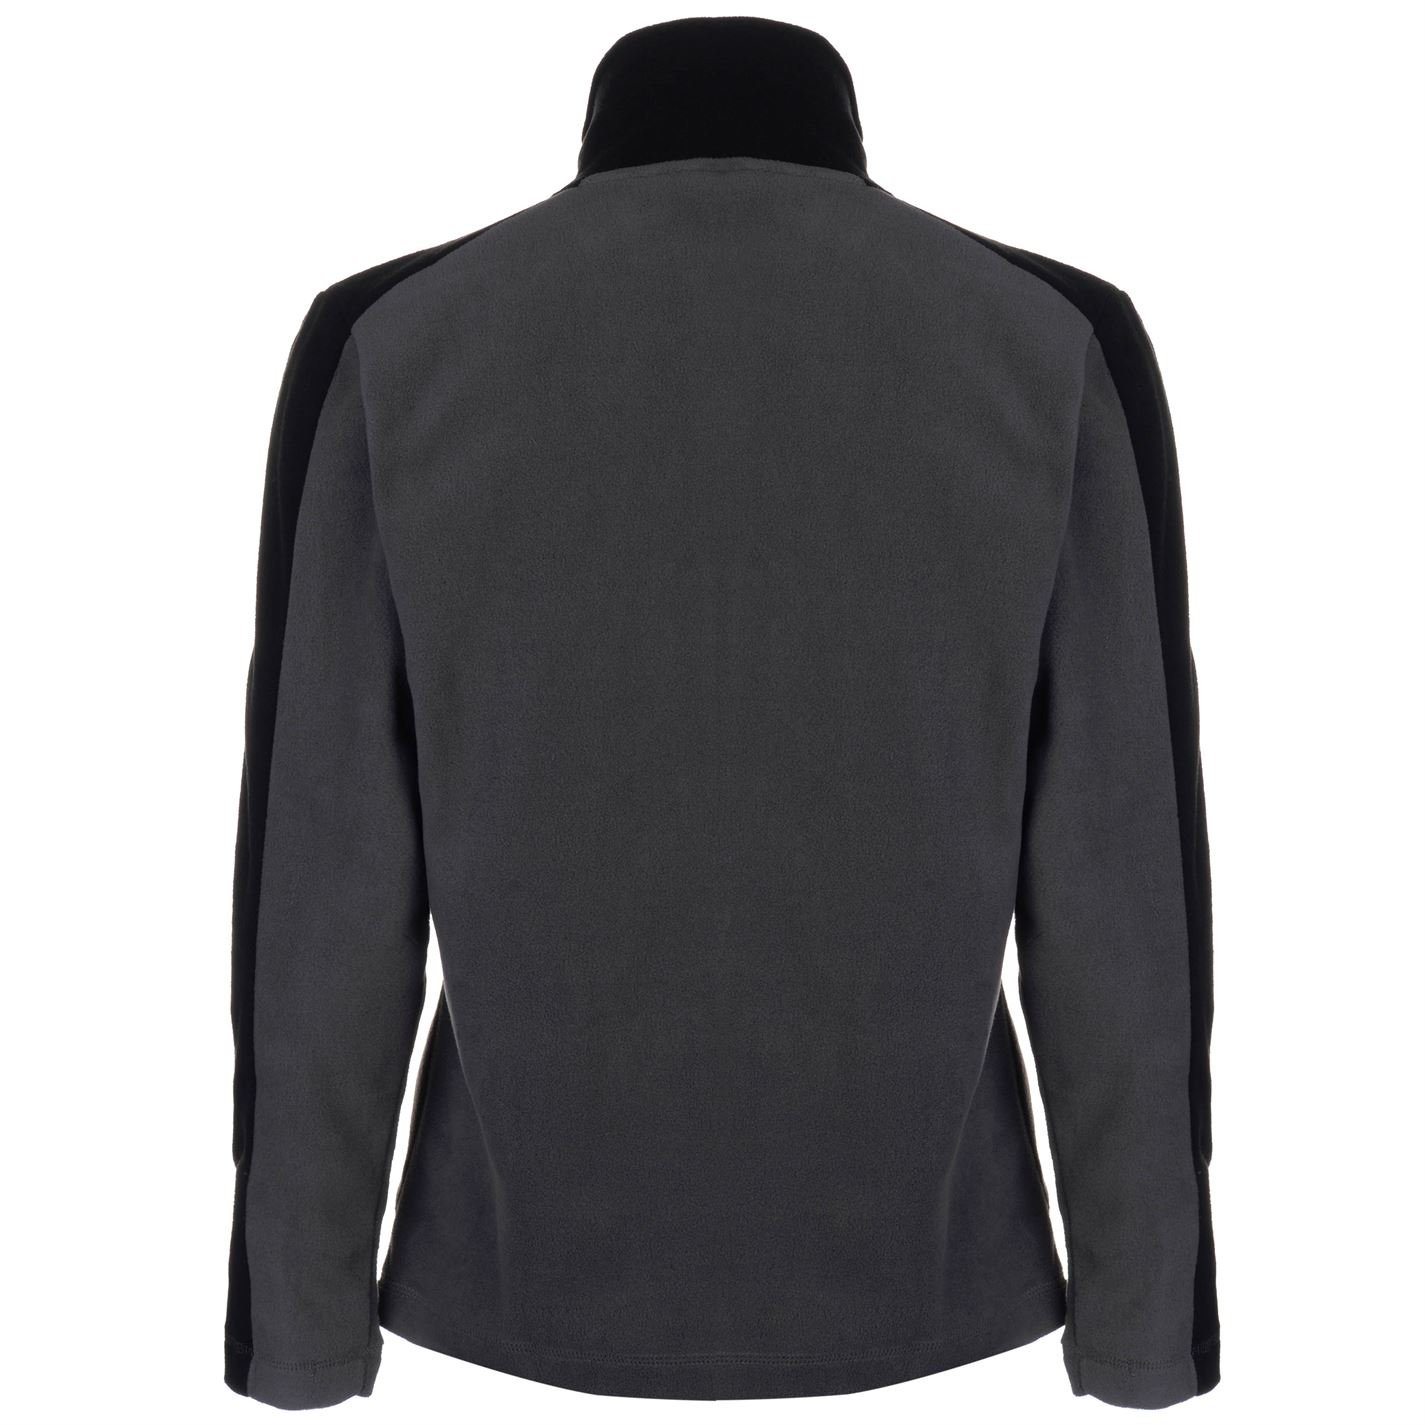 3f78ed0e0 Gelert Mens Ottawa Fleece Jacket